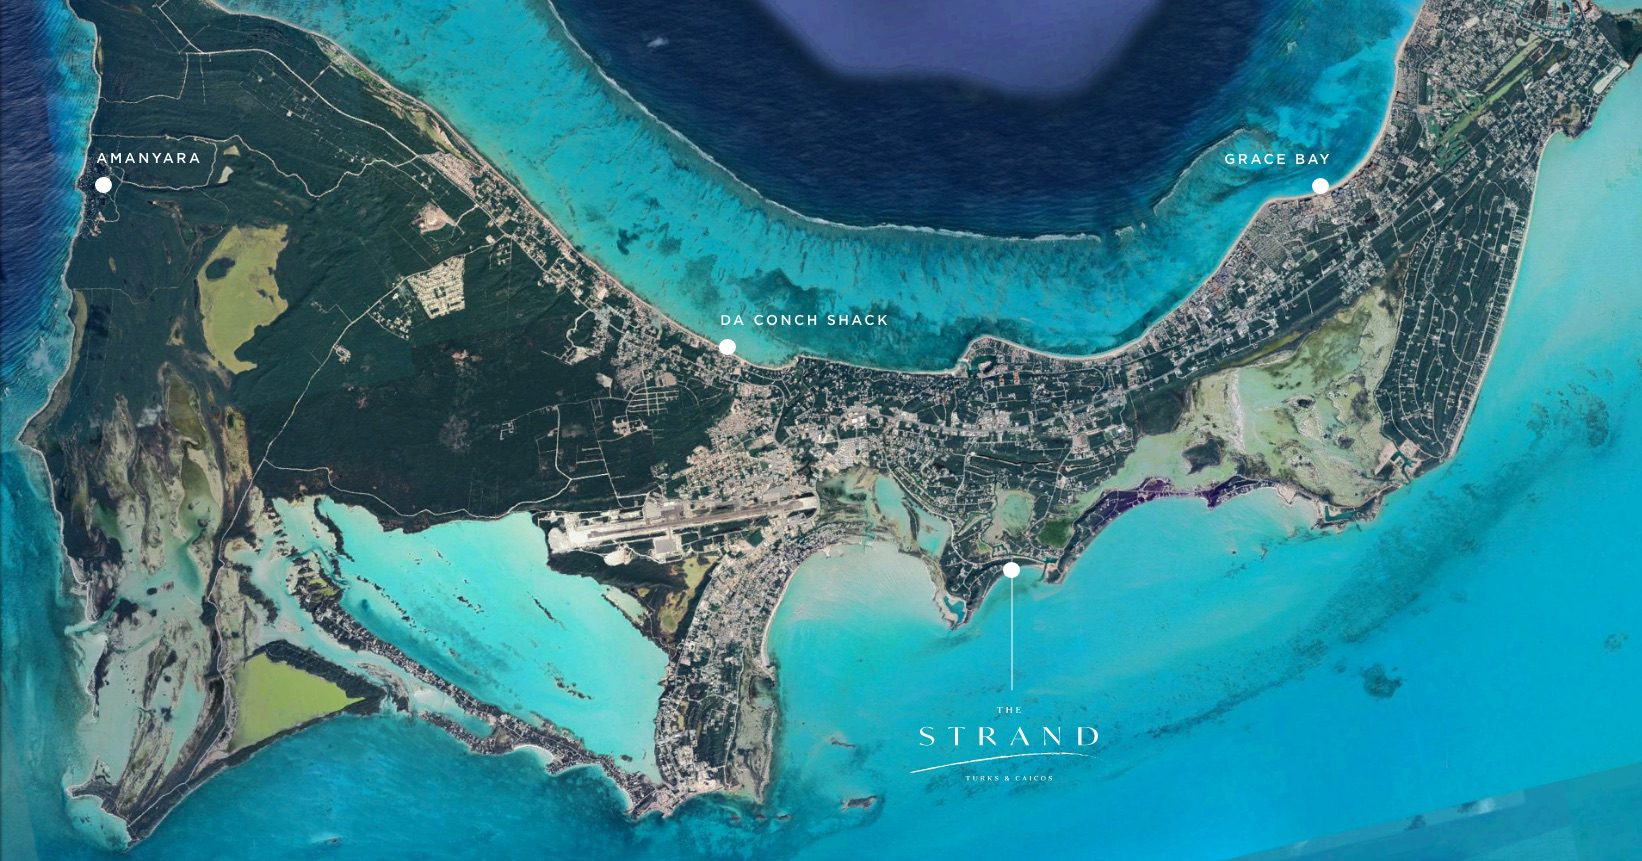 The Strand Turks and Caicos - Real Estate in Providenciales